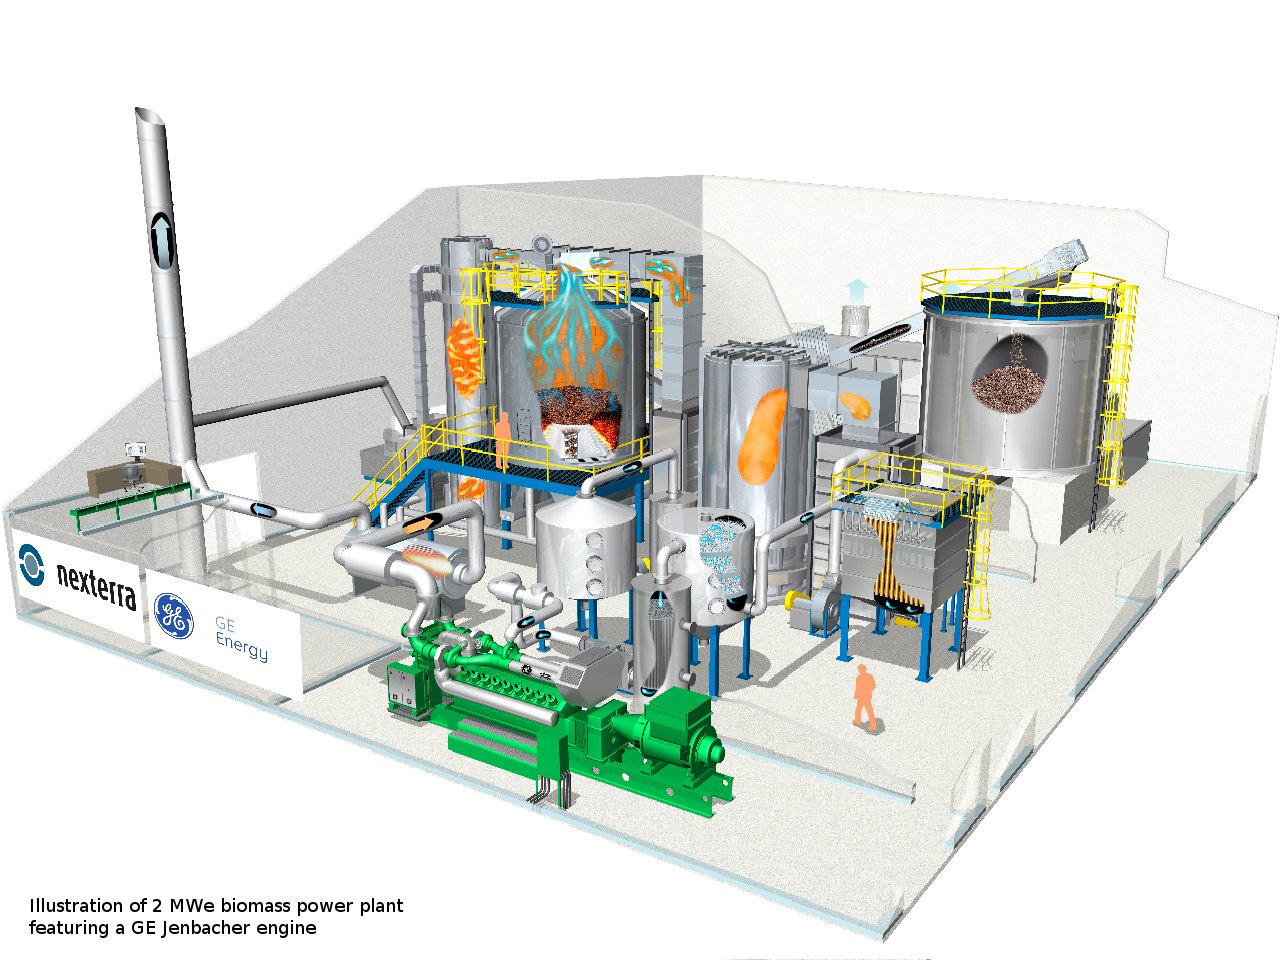 biomass power generation 11-305104 - biomass power plant managers manage operations at biomass  power generation facilities direct work activities at plant, including supervision of .